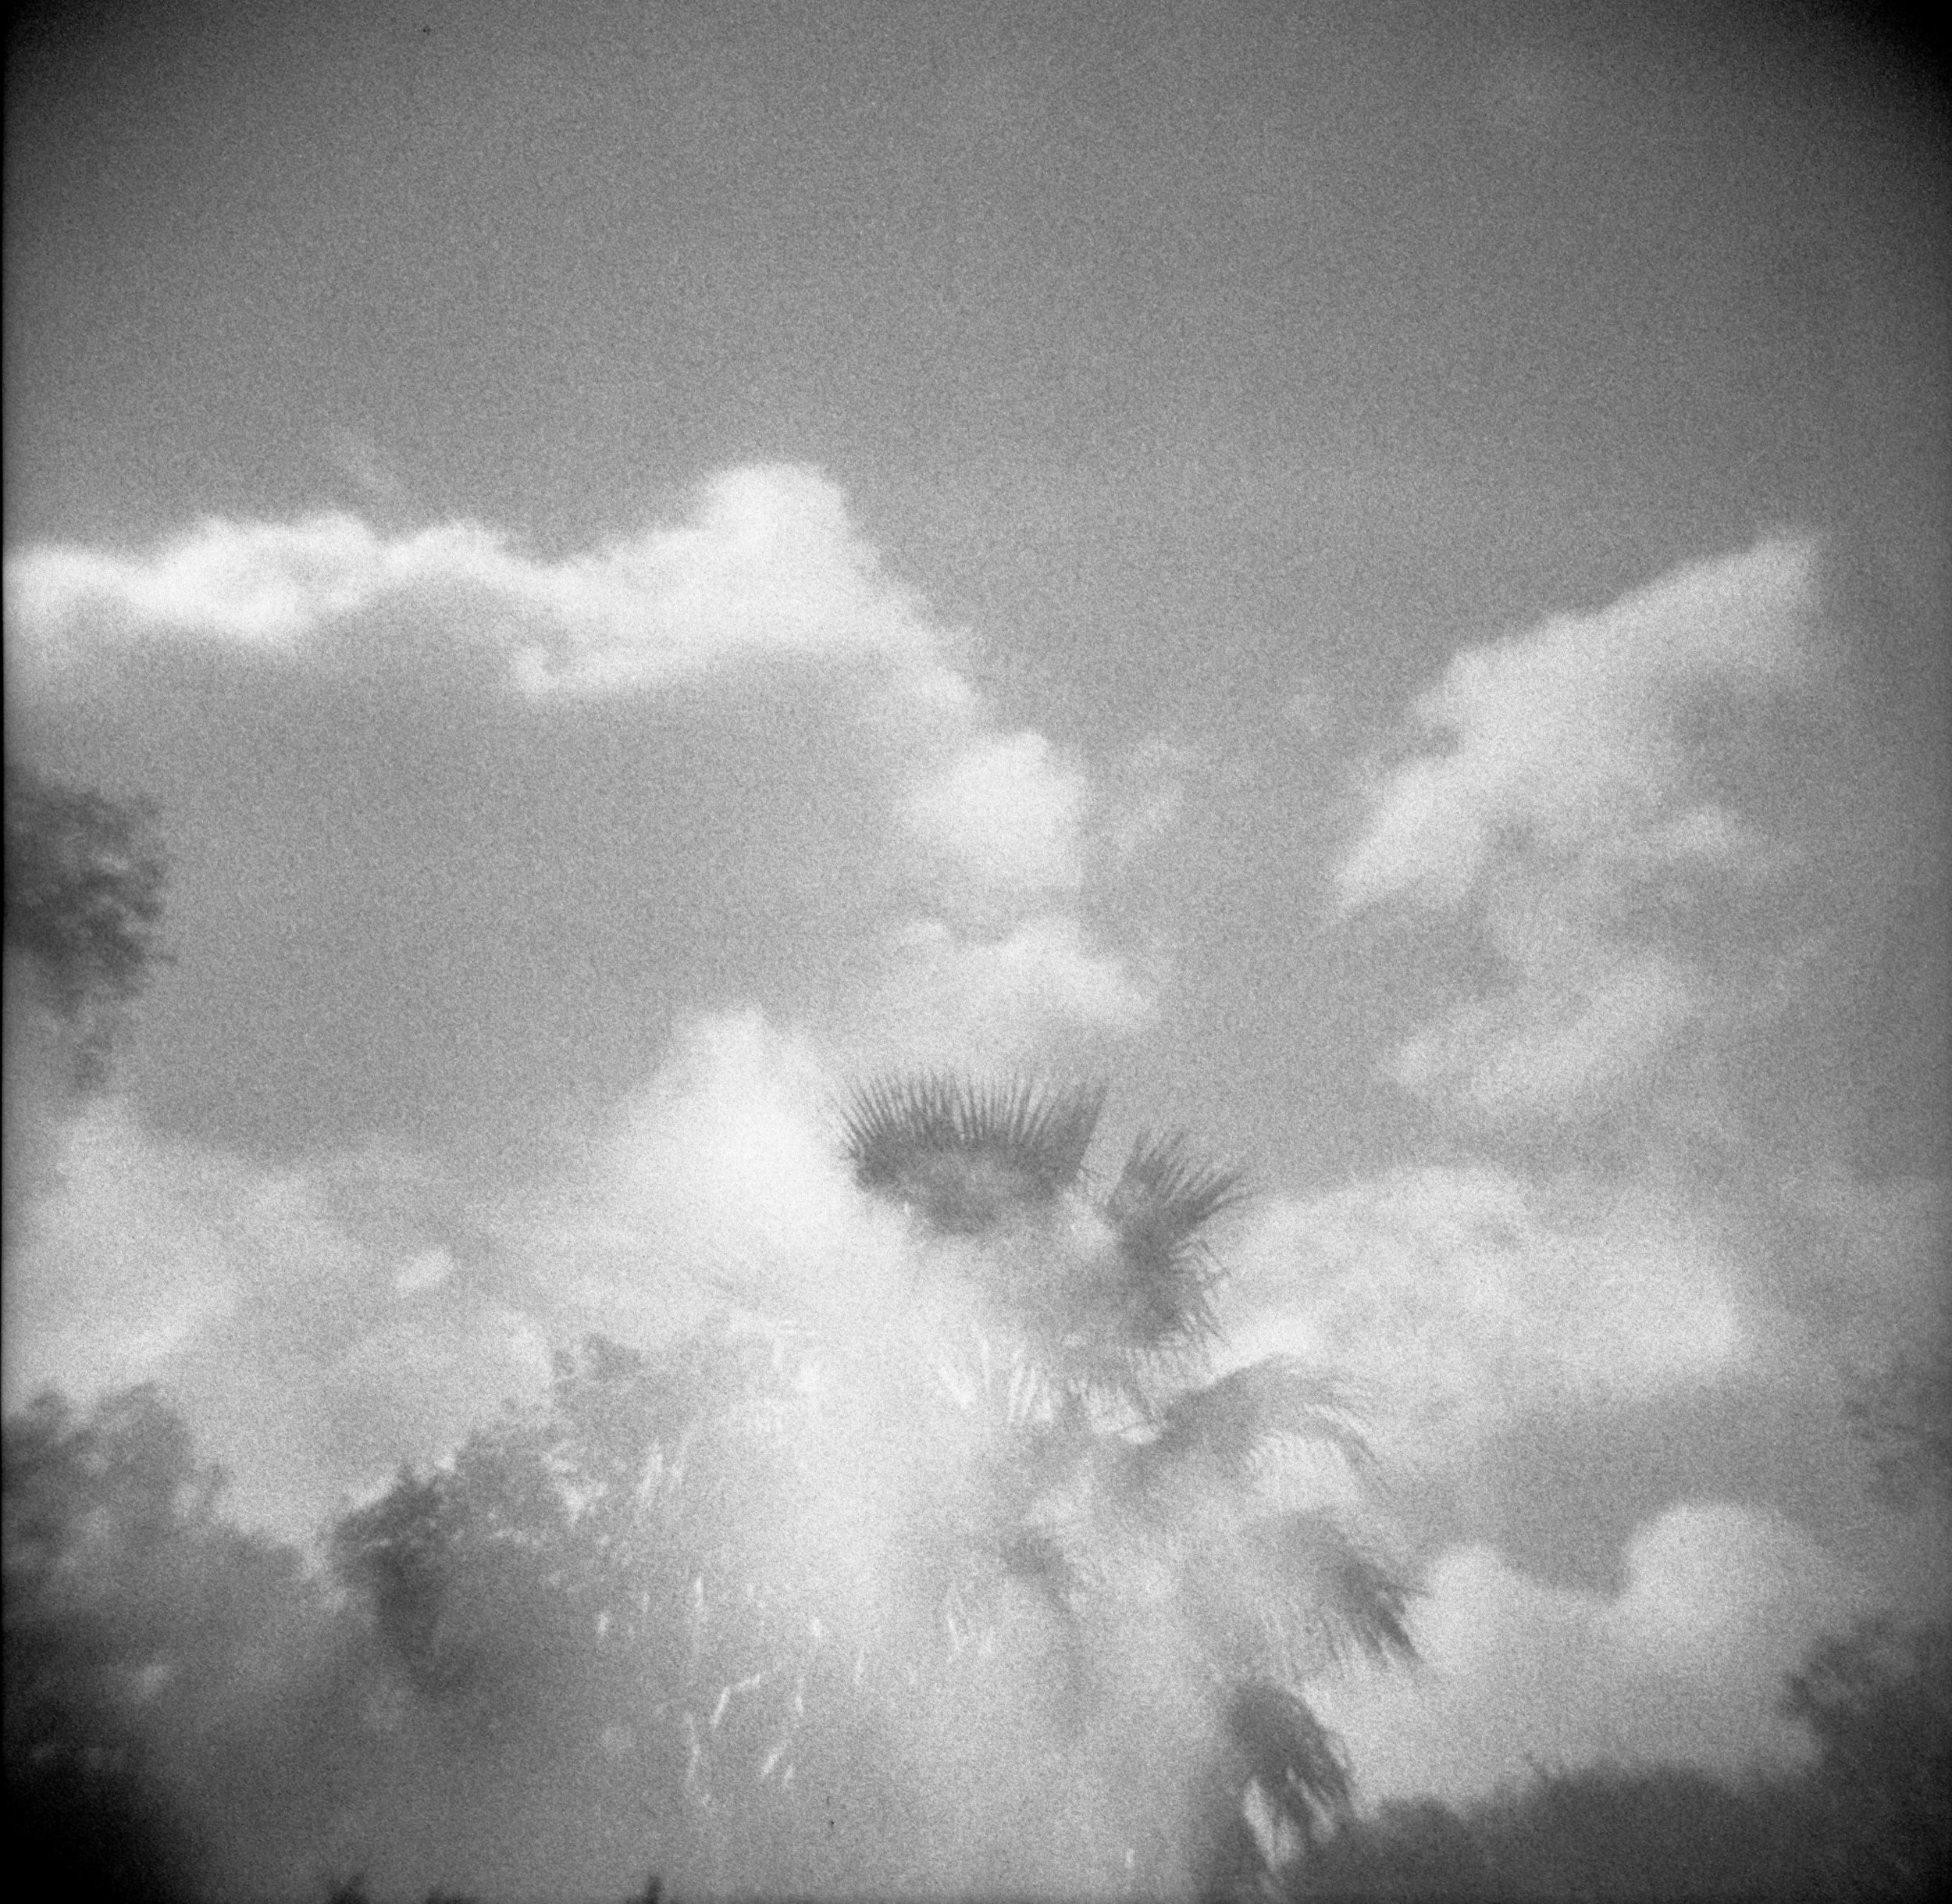 Ilford Delta 3200 and Holga, double exposure outdoors